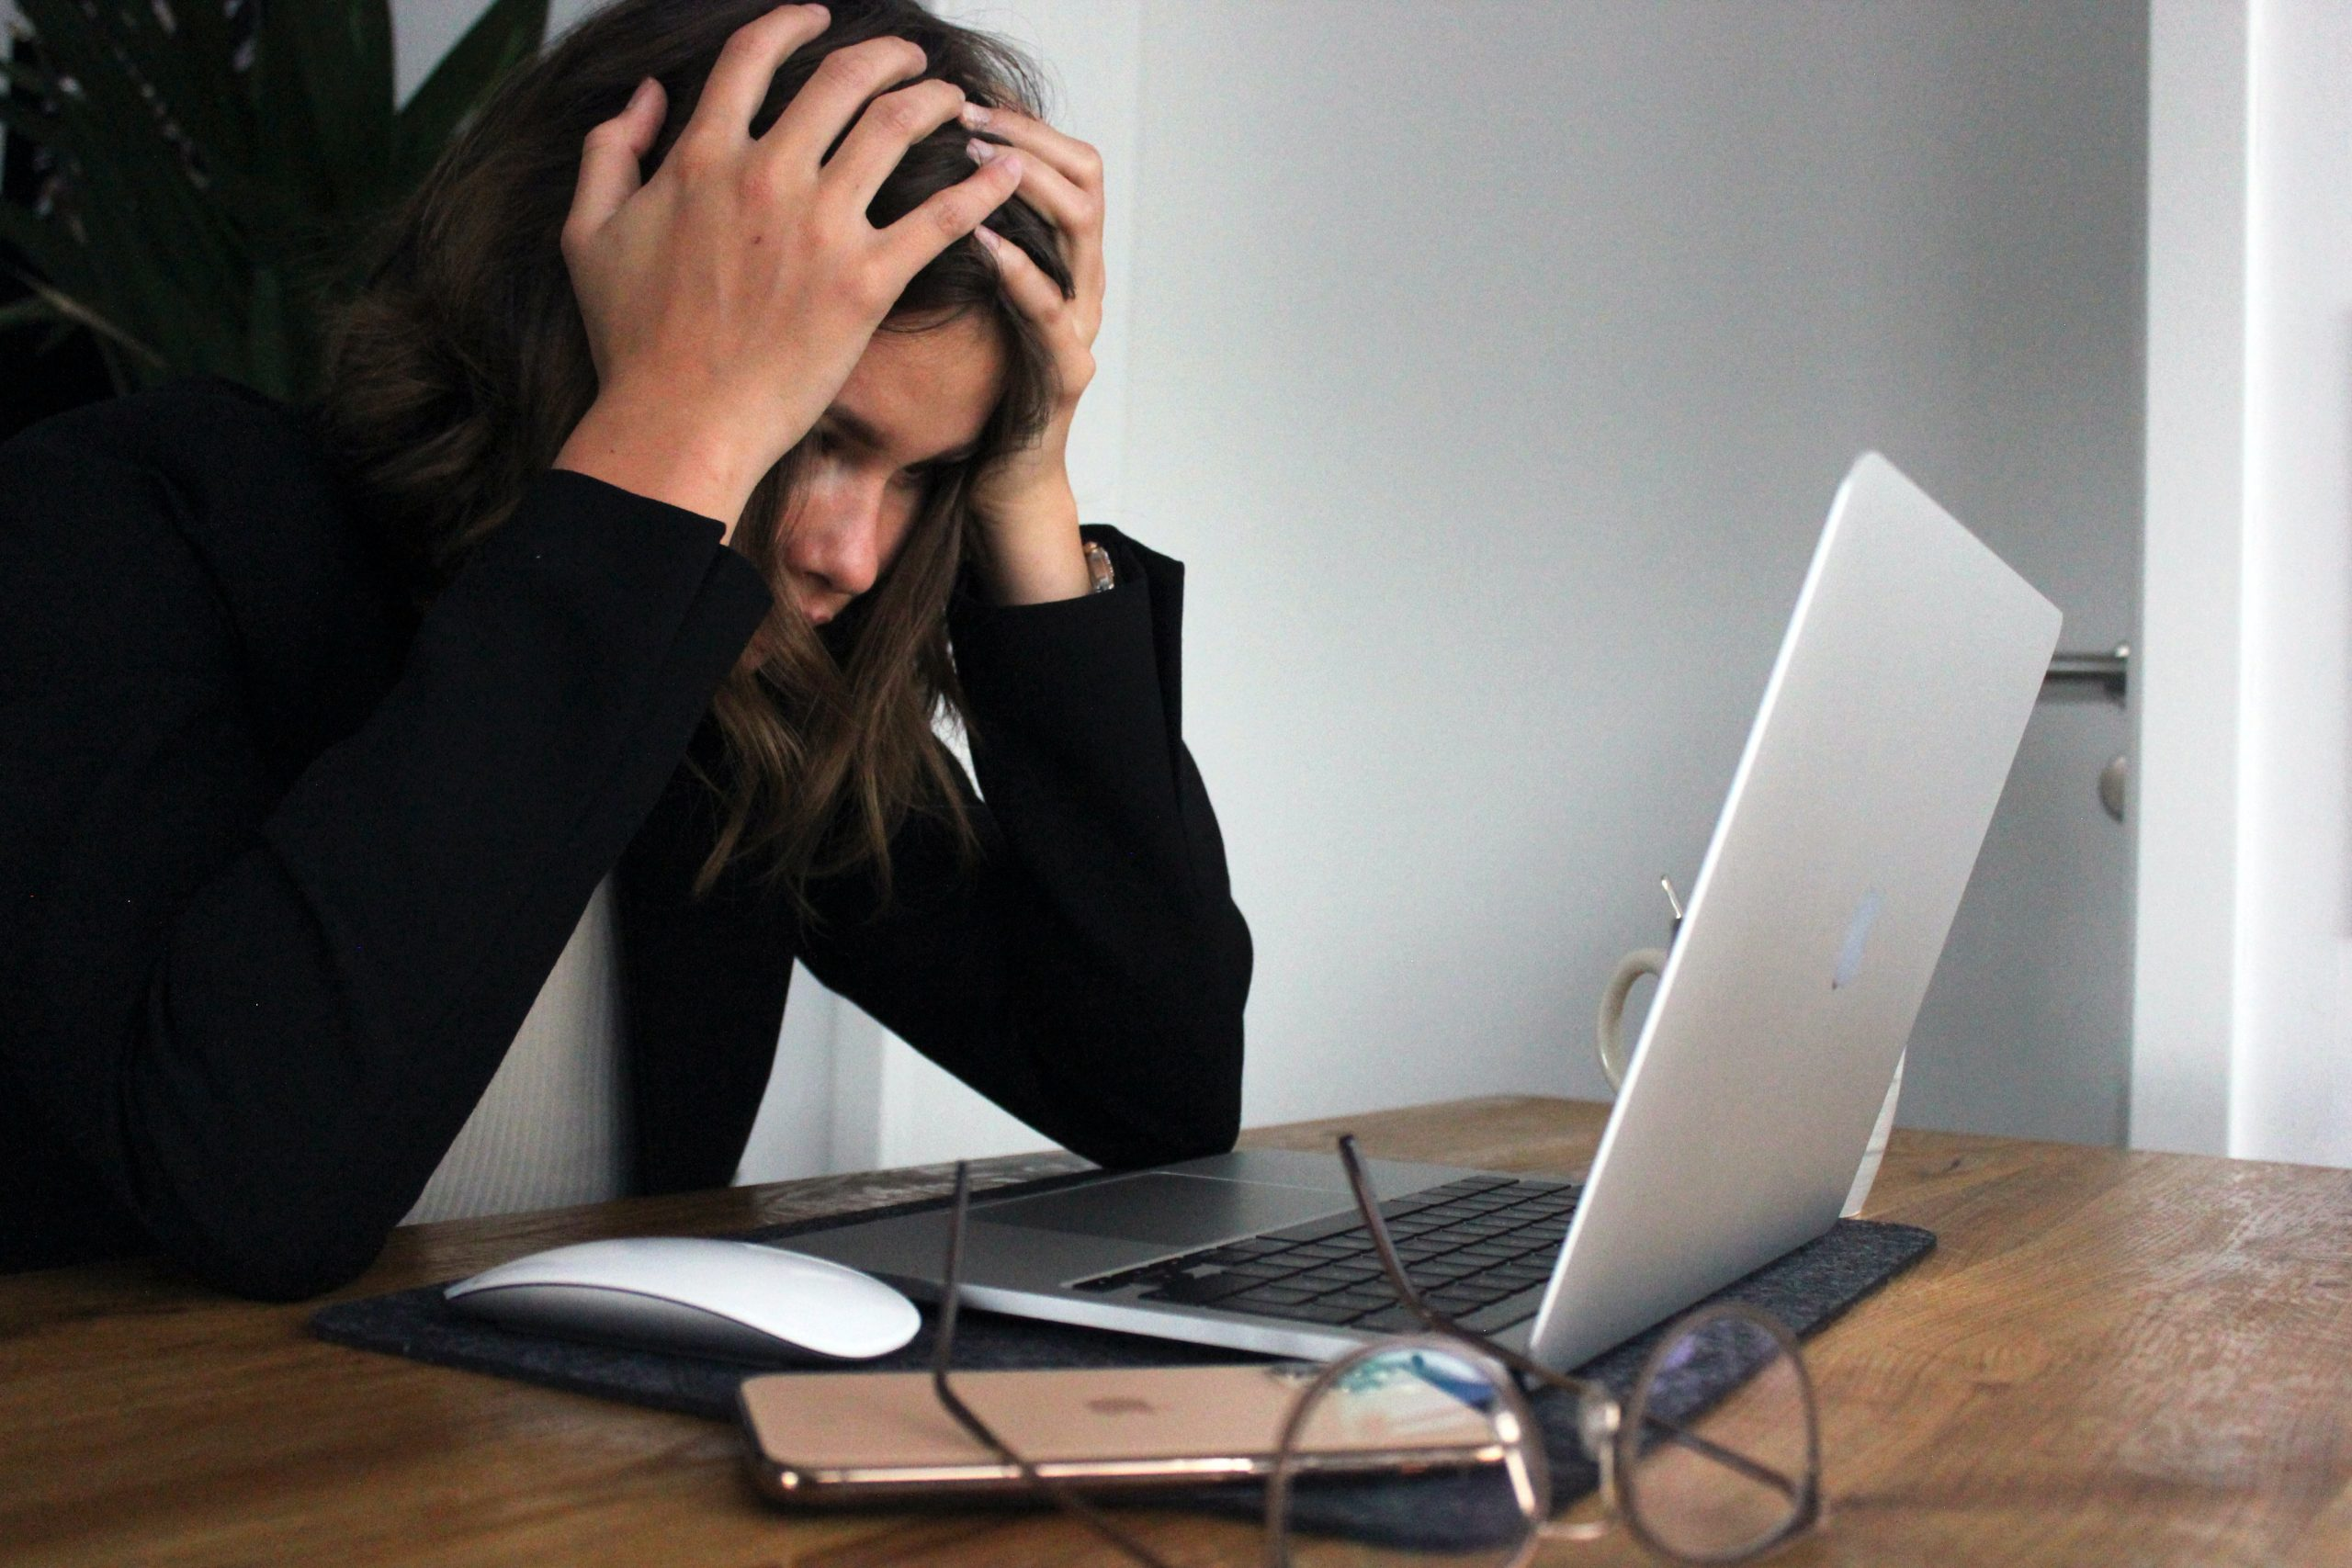 Lady looking at the laptop screen with a concern face | Pivotal Motion